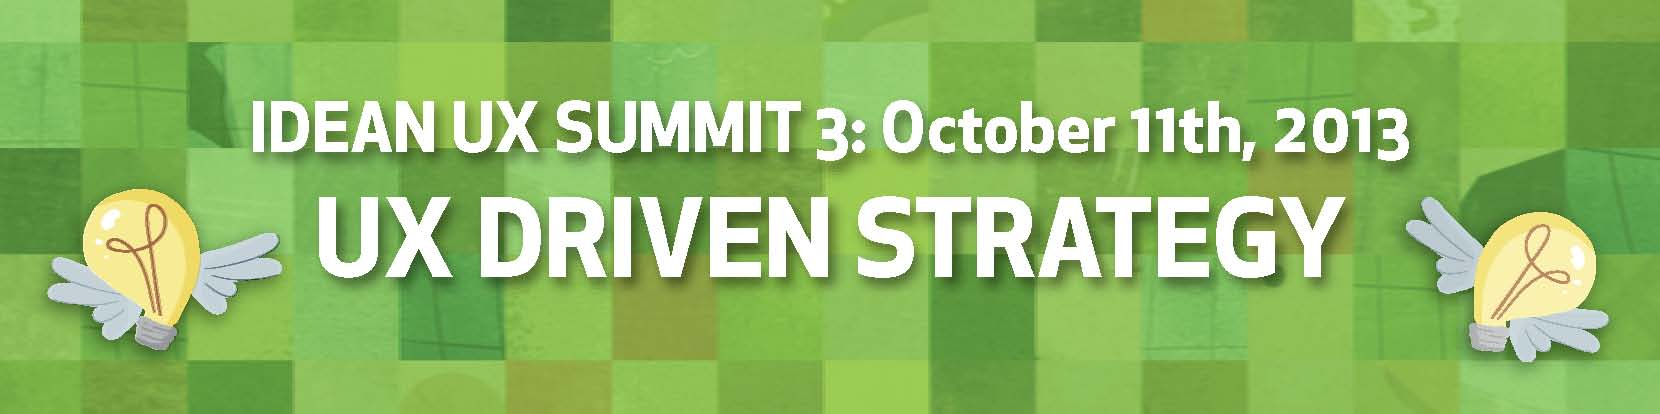 UX Summit 3 Header